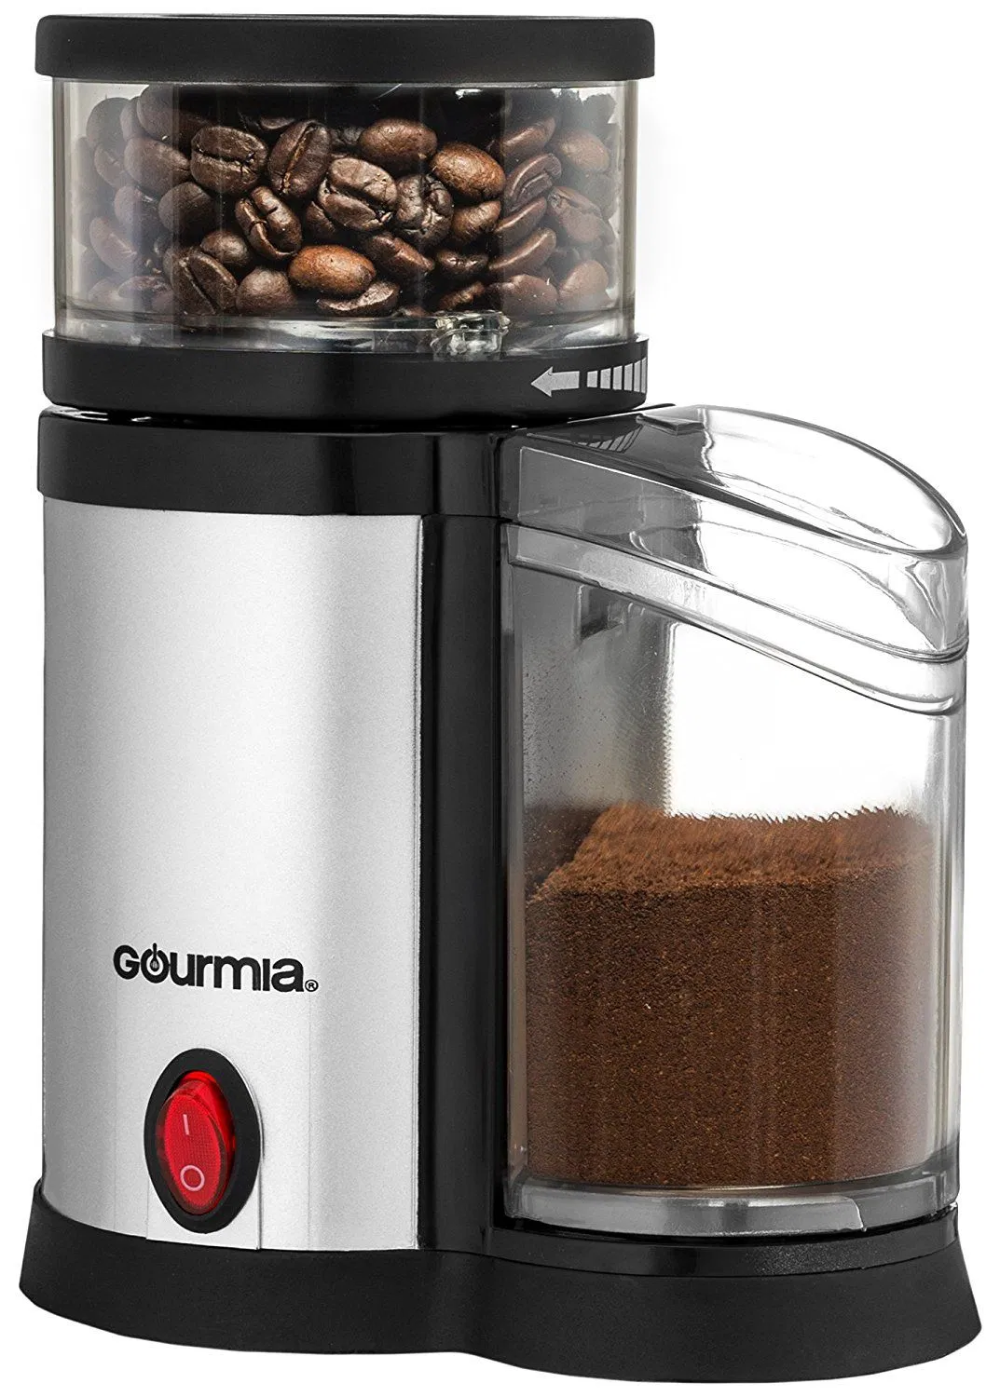 Gourmia Compact Electric Burr Coffee Grinder Coffee and